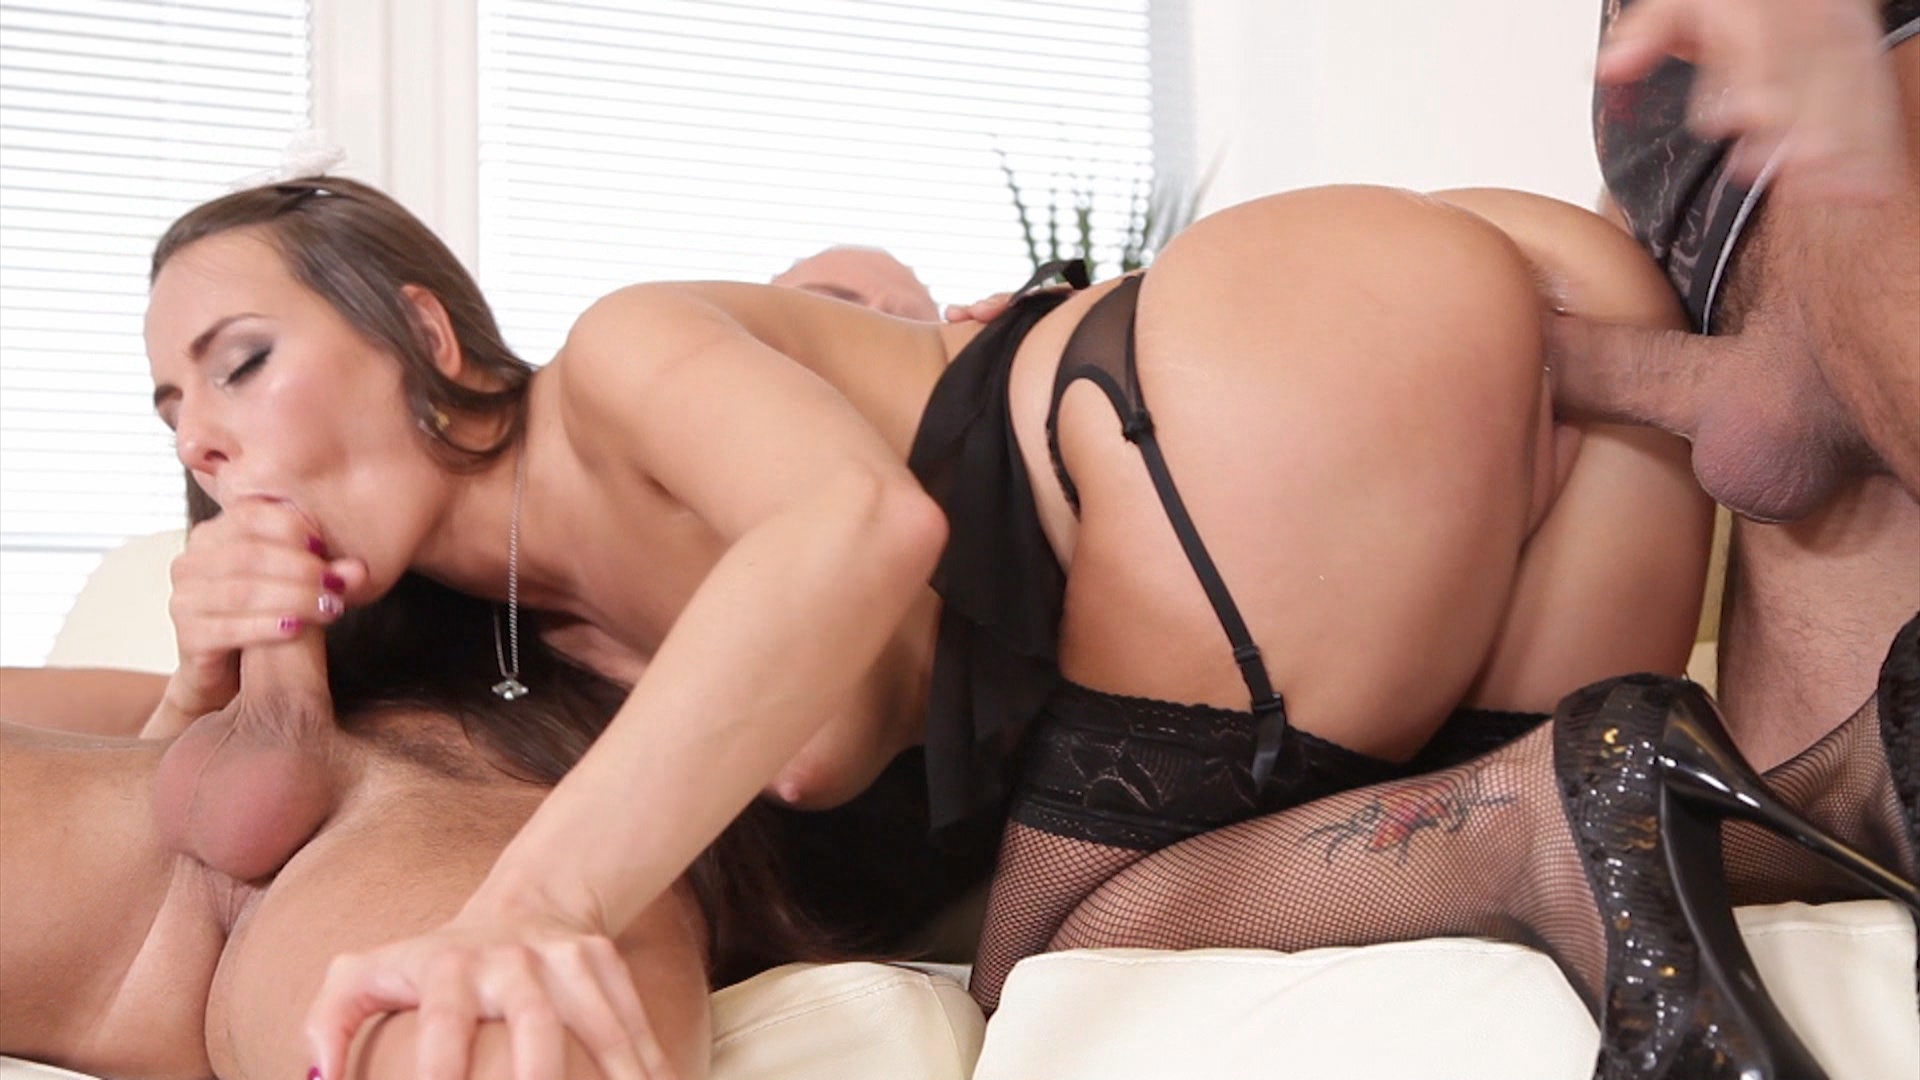 DP The Nanny With Me 3 Xvideos184276